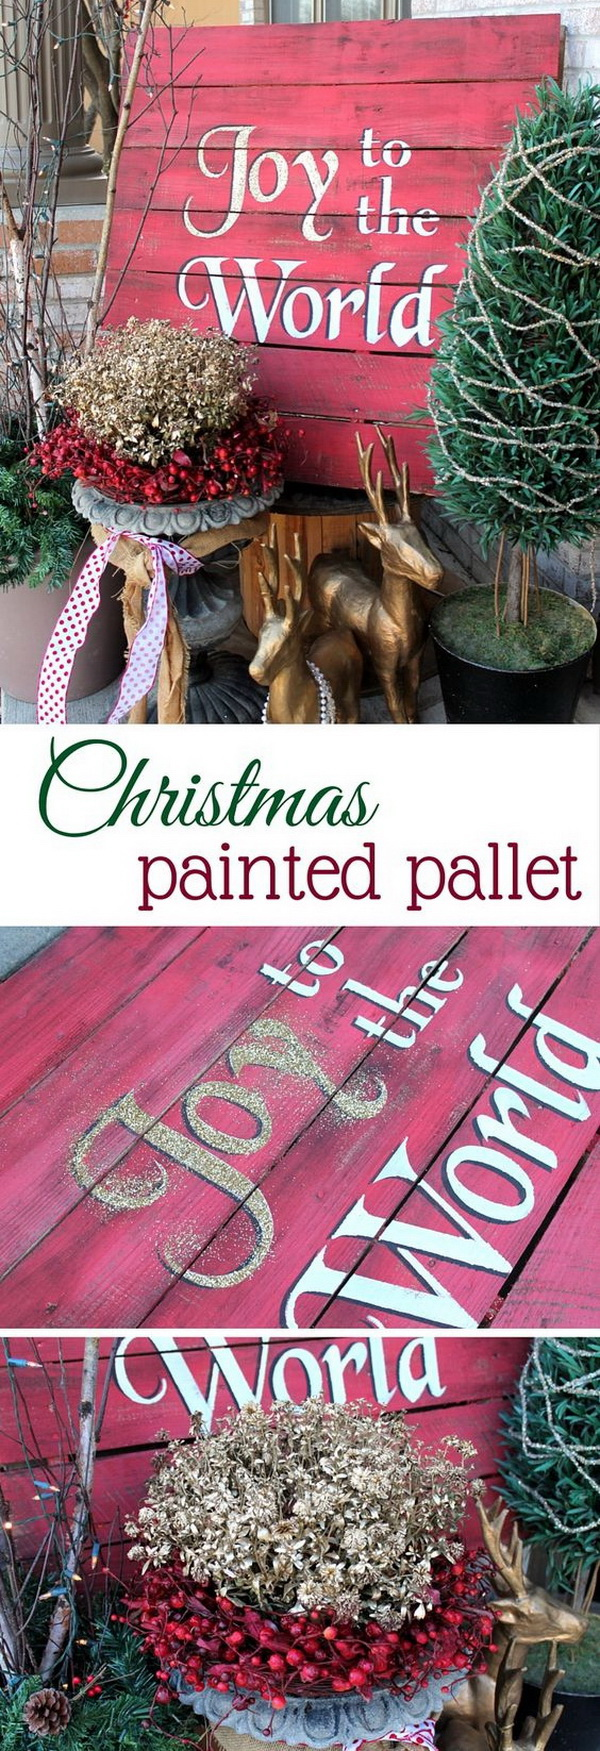 Joy to the World Christmas Painted Pallet. This painted Christmas Pallet makes a festive front porch decor for this holiday seaon. It is easy to make by painting and stencilling in gorgeous colors.